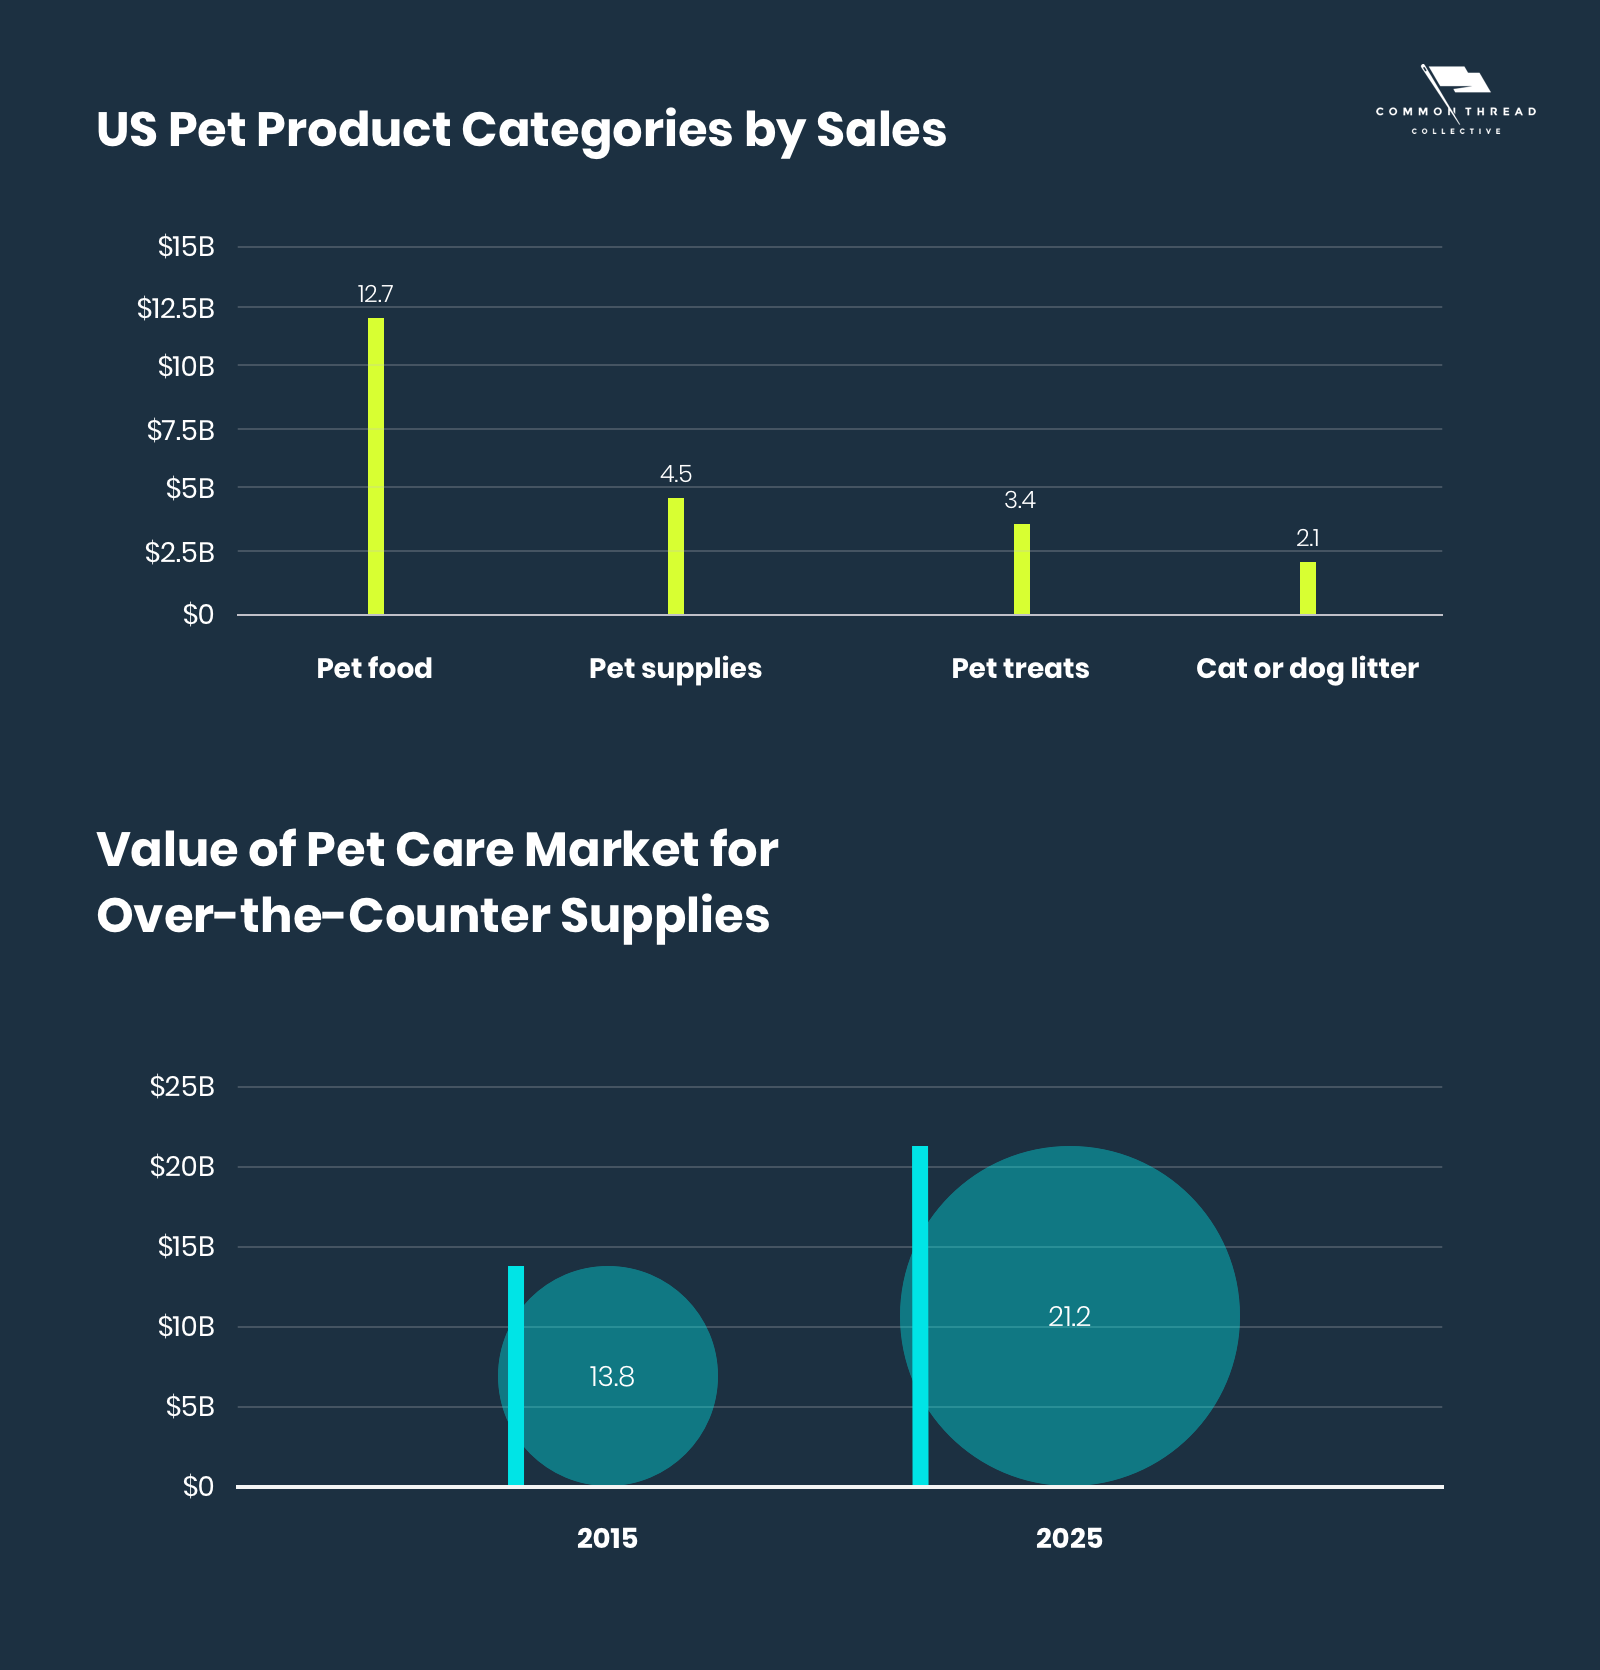 US Pet Product Categories by Sales and Value of Over the Counter Supplies